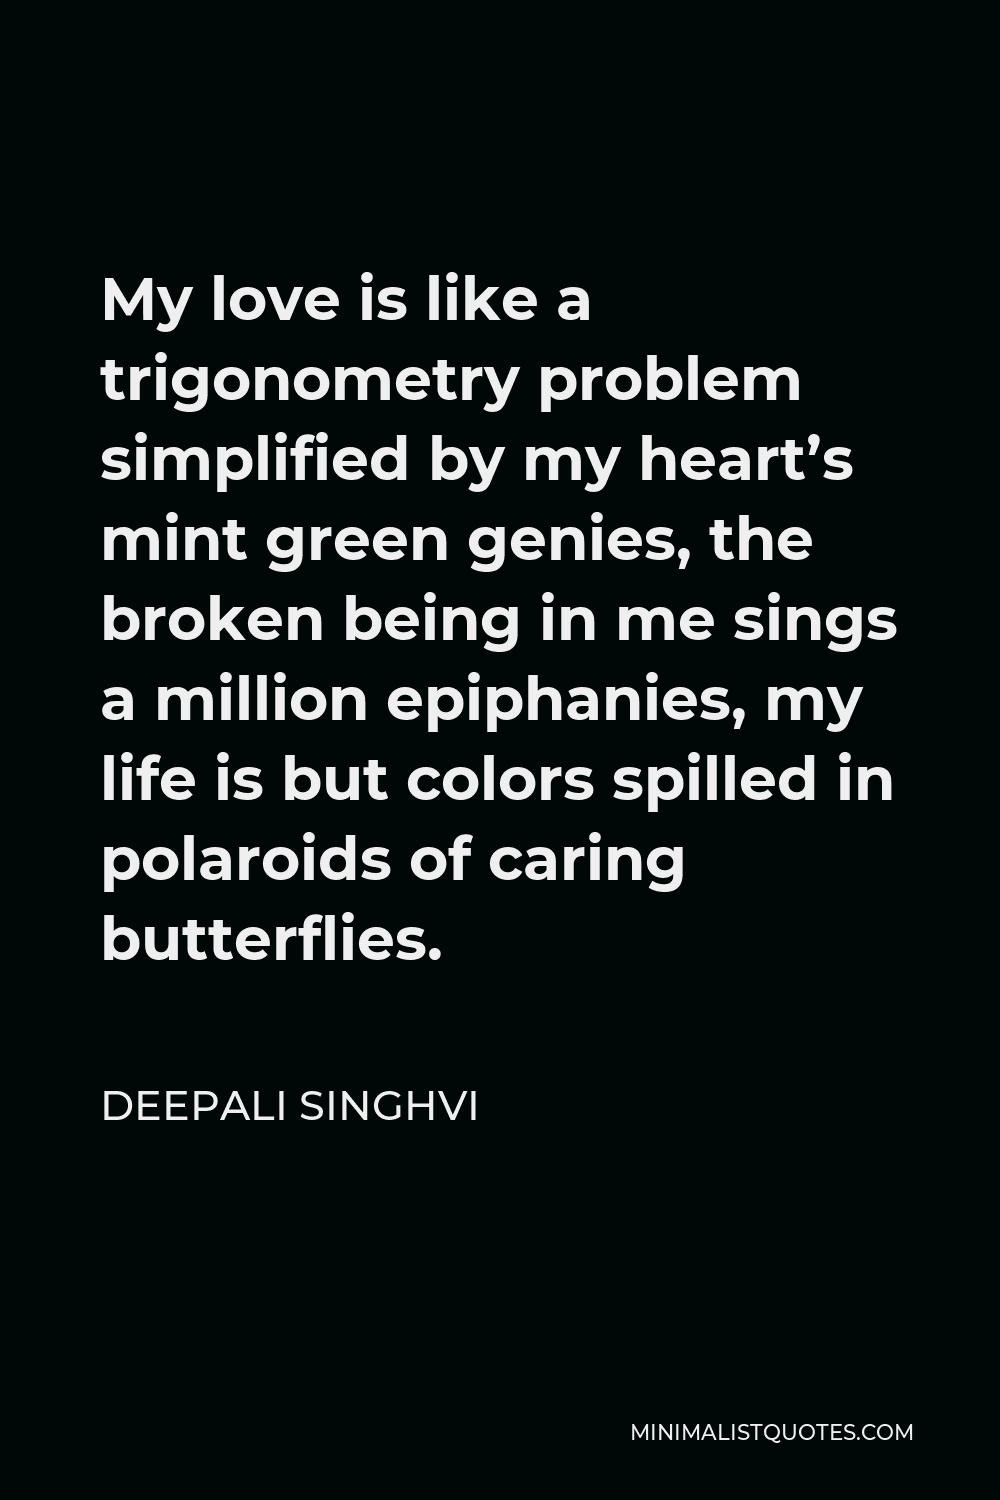 Deepali Singhvi Quote - My love is like a trigonometry problem simplified by my heart's mint green genies, the broken being in me sings a million epiphanies, my life is but colors spilled in polaroids of caring butterflies.